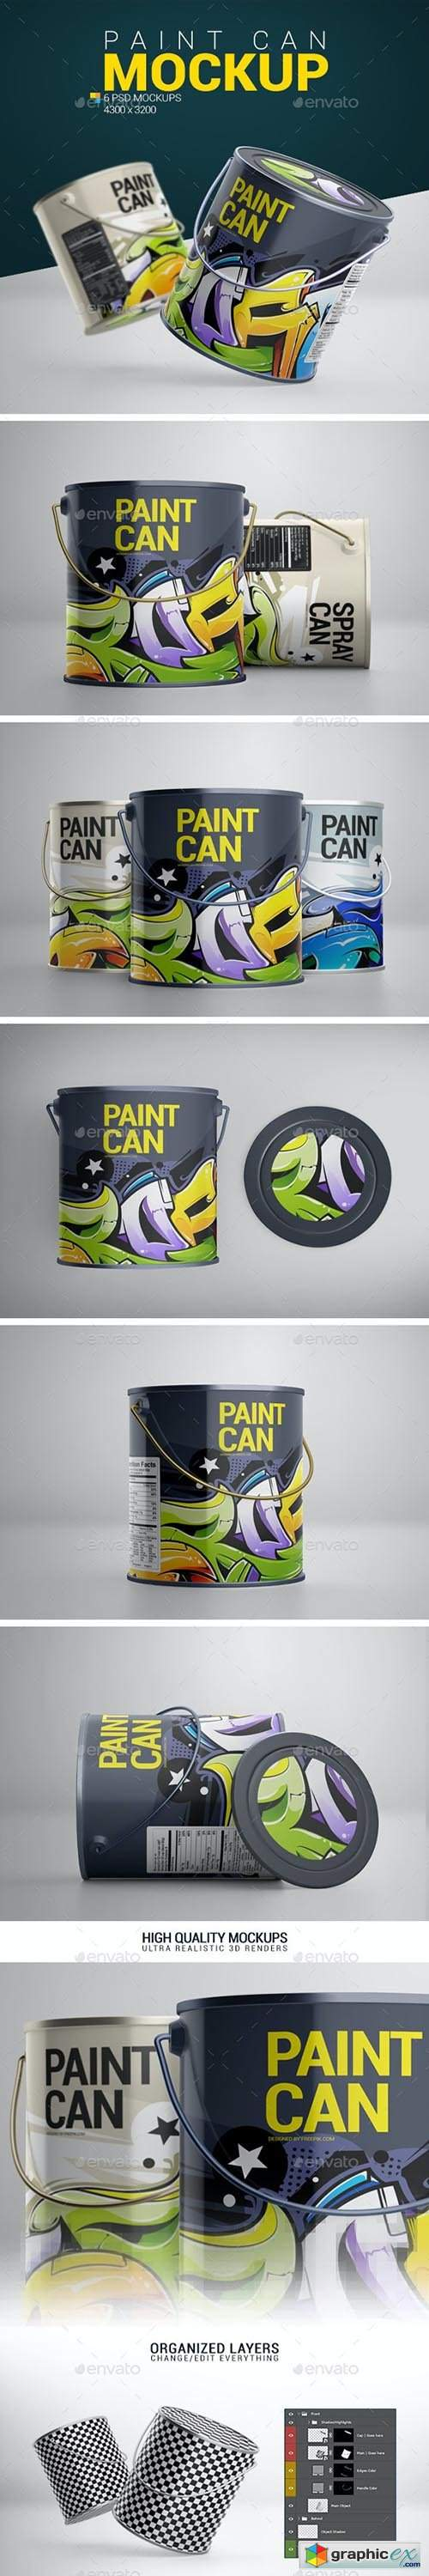 Paint Can Mockup 24030529